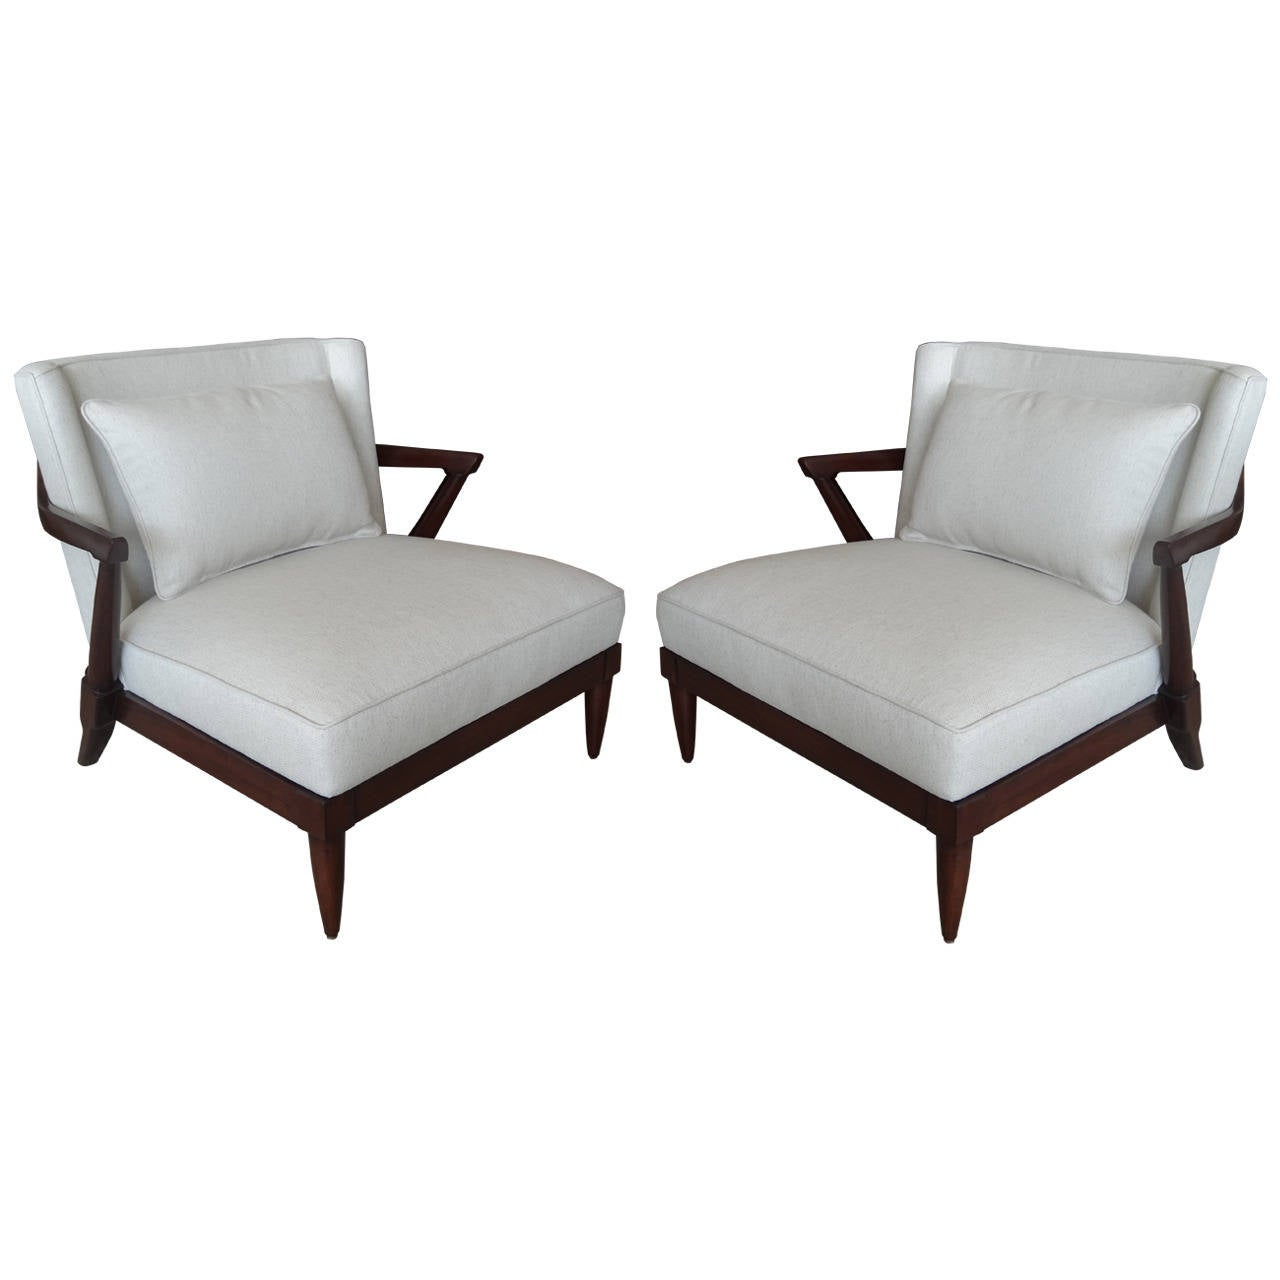 Pair Of Parzinger Style Club Chairs At 1stdibs